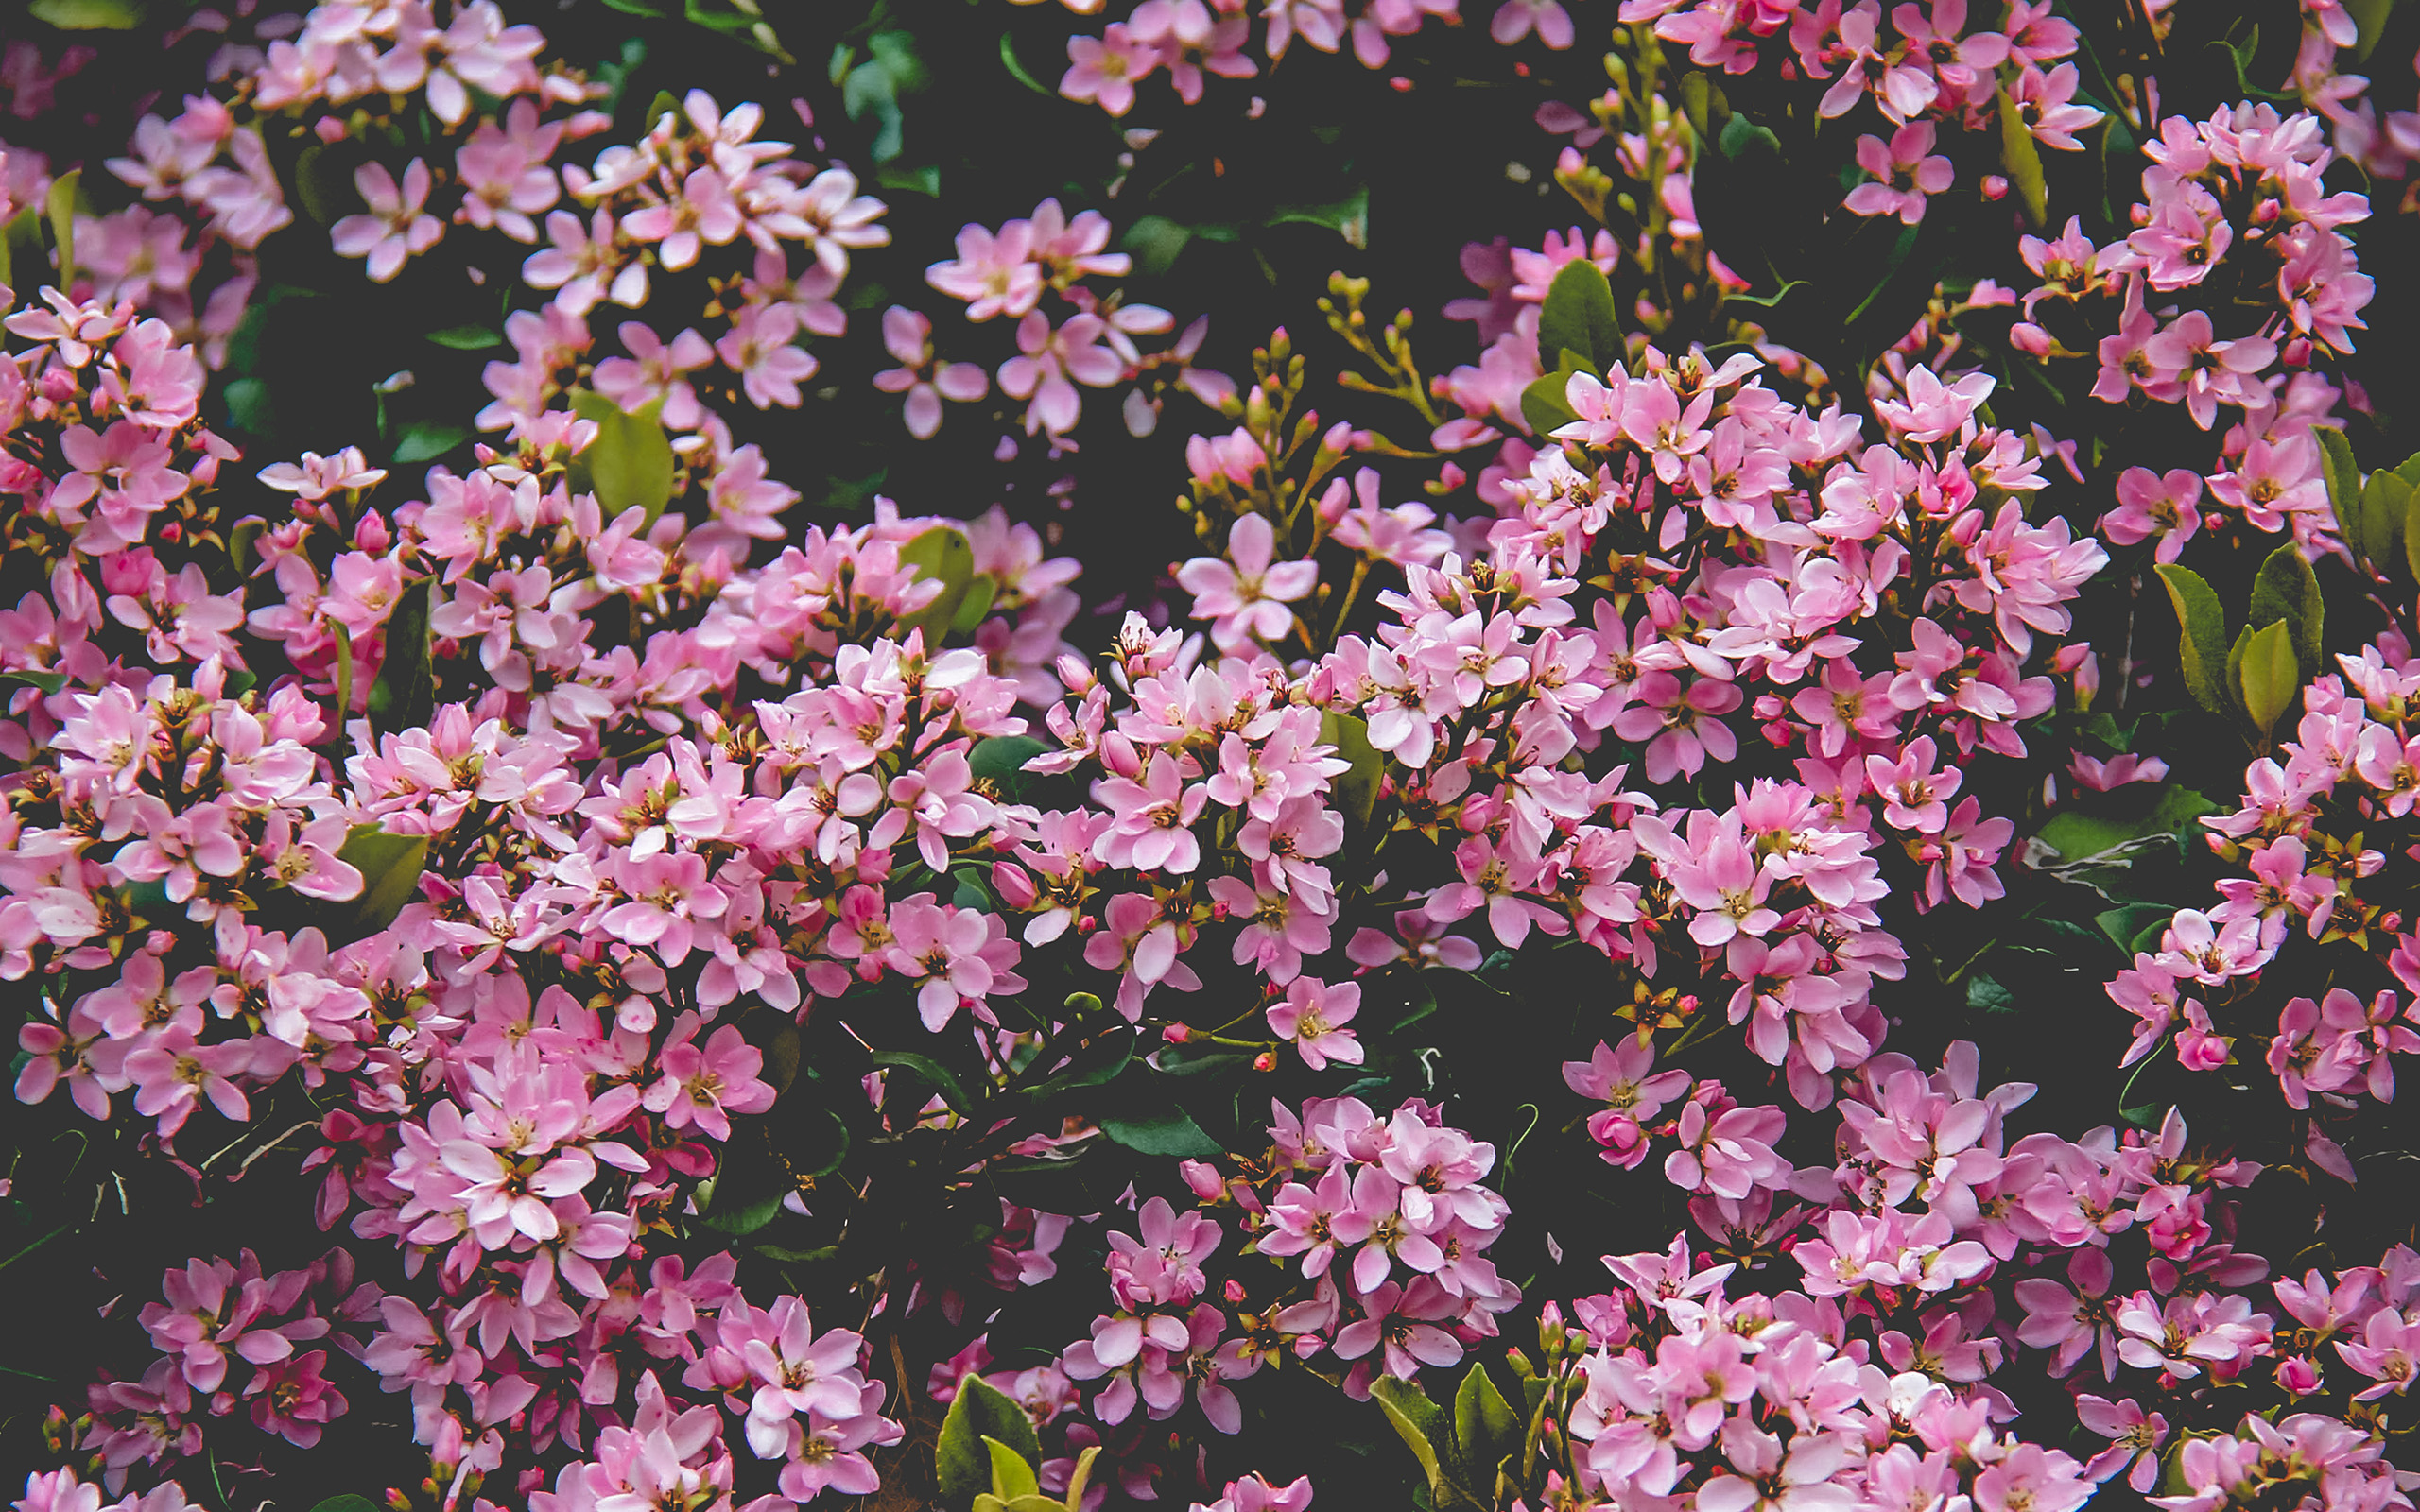 Hd Wallpapers For Nexus 5 Nv68 Flower Pink Spring Happy Nature Wallpaper